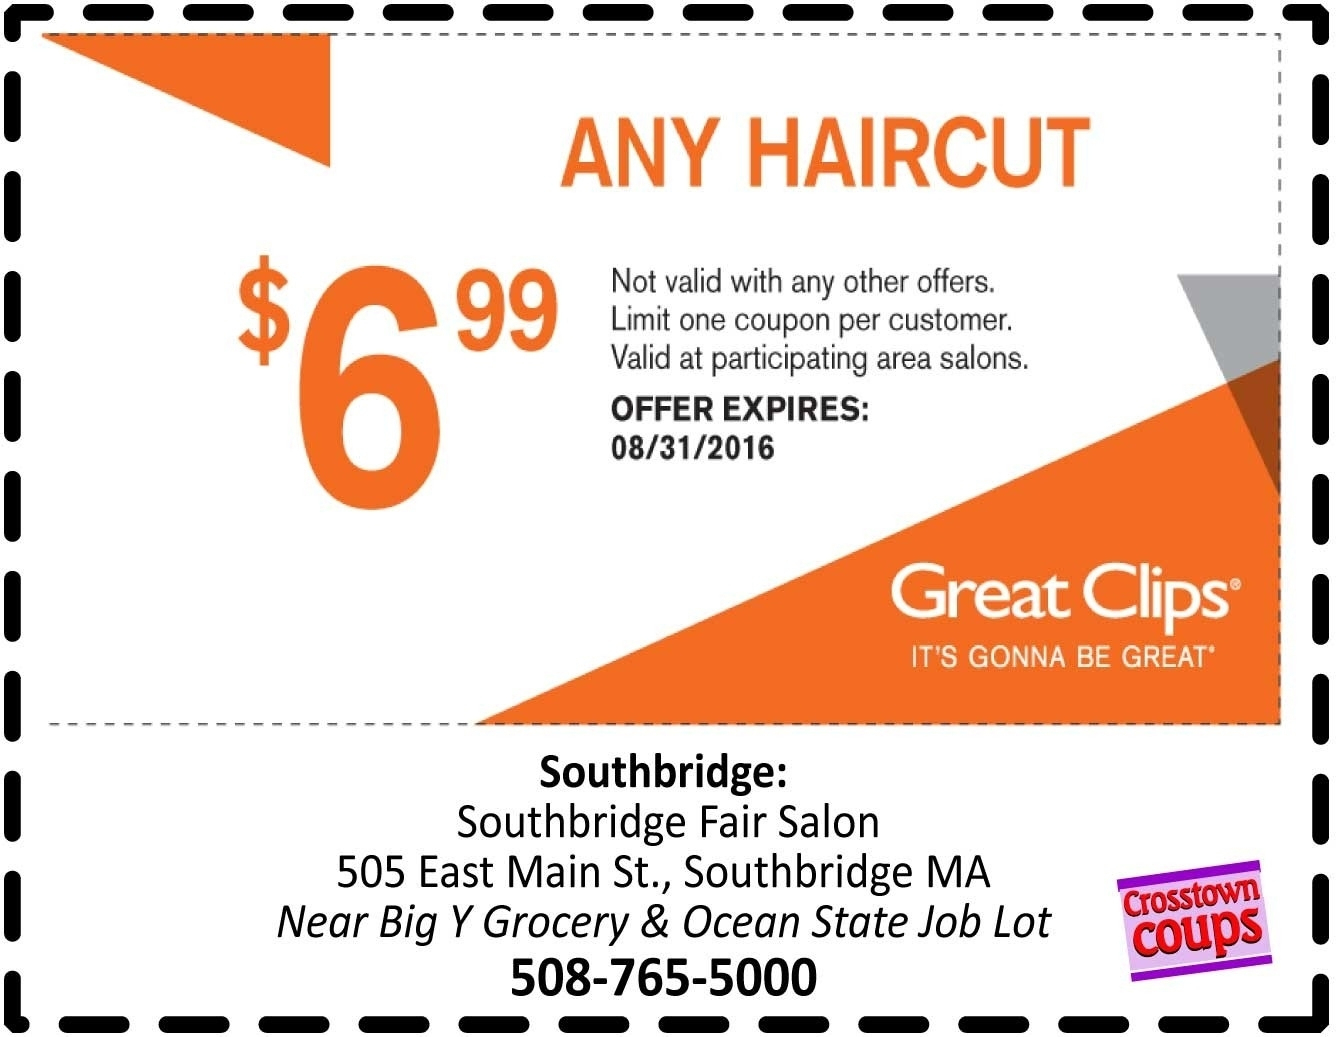 Sport Clips Printable Coupons 2018 | World Of Printable And Chart - Great Clips Free Coupons Printable